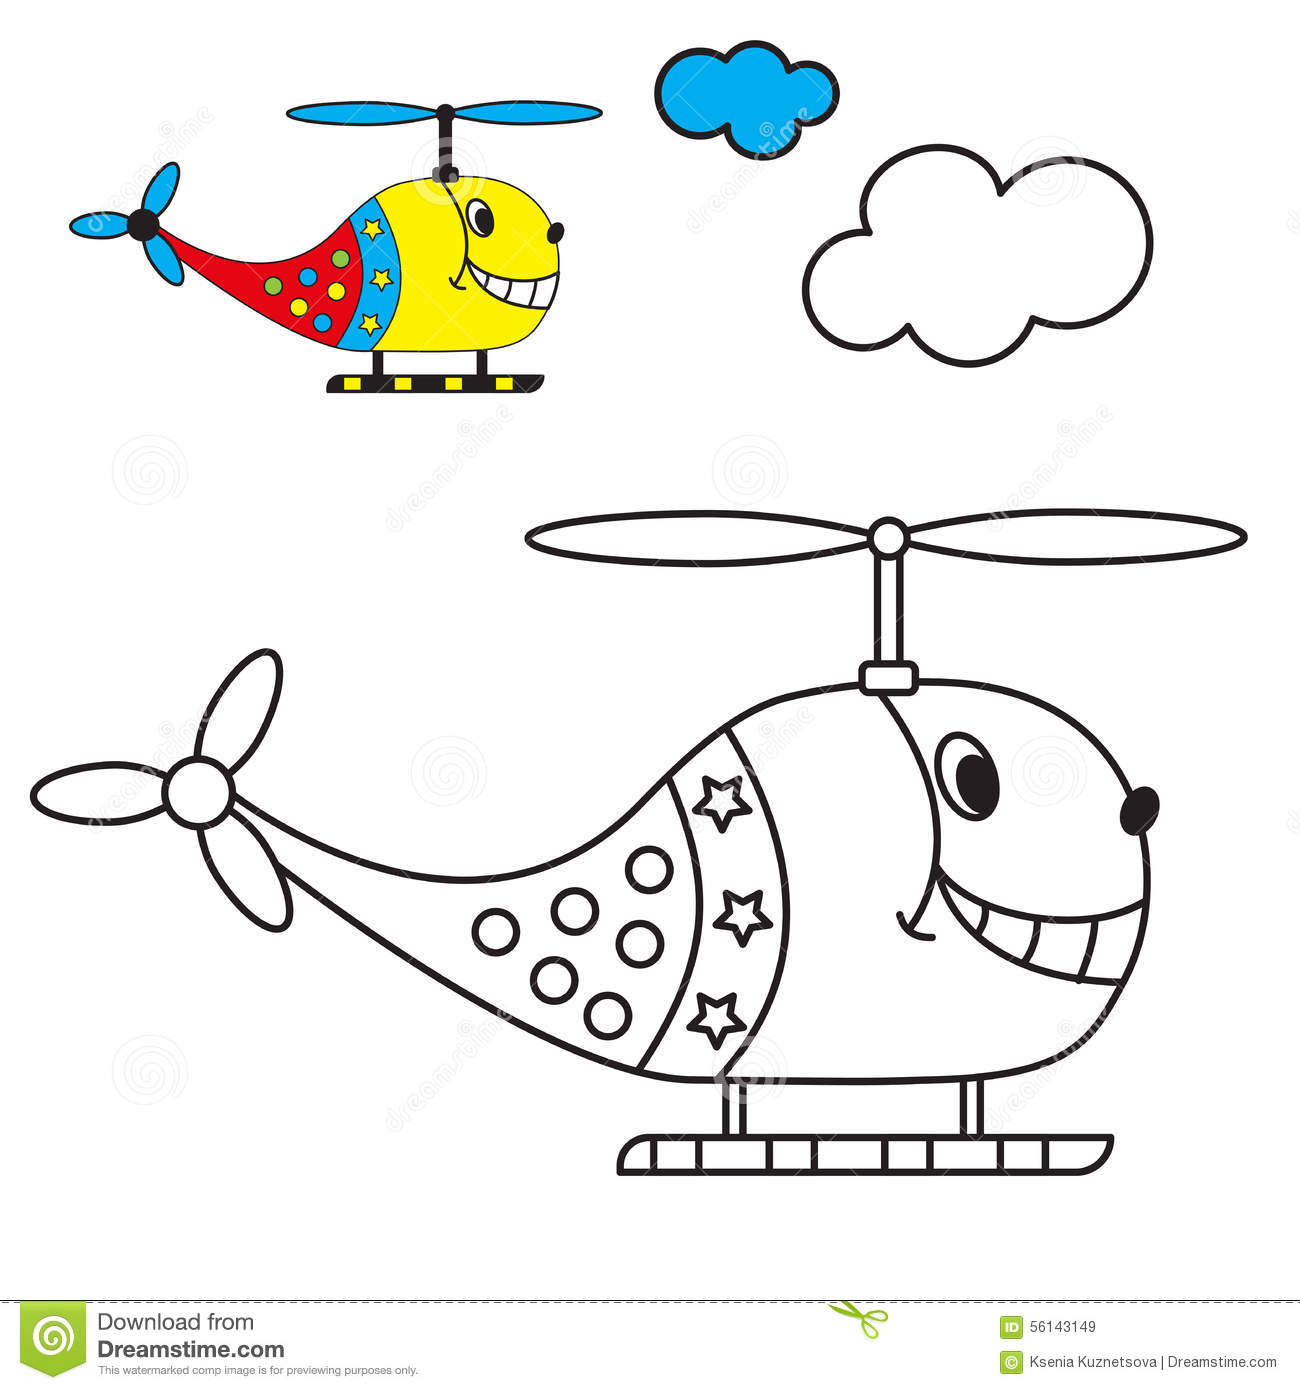 Coloring Book The Helicopter In The Sky With Stock Vector - Image: 56143149